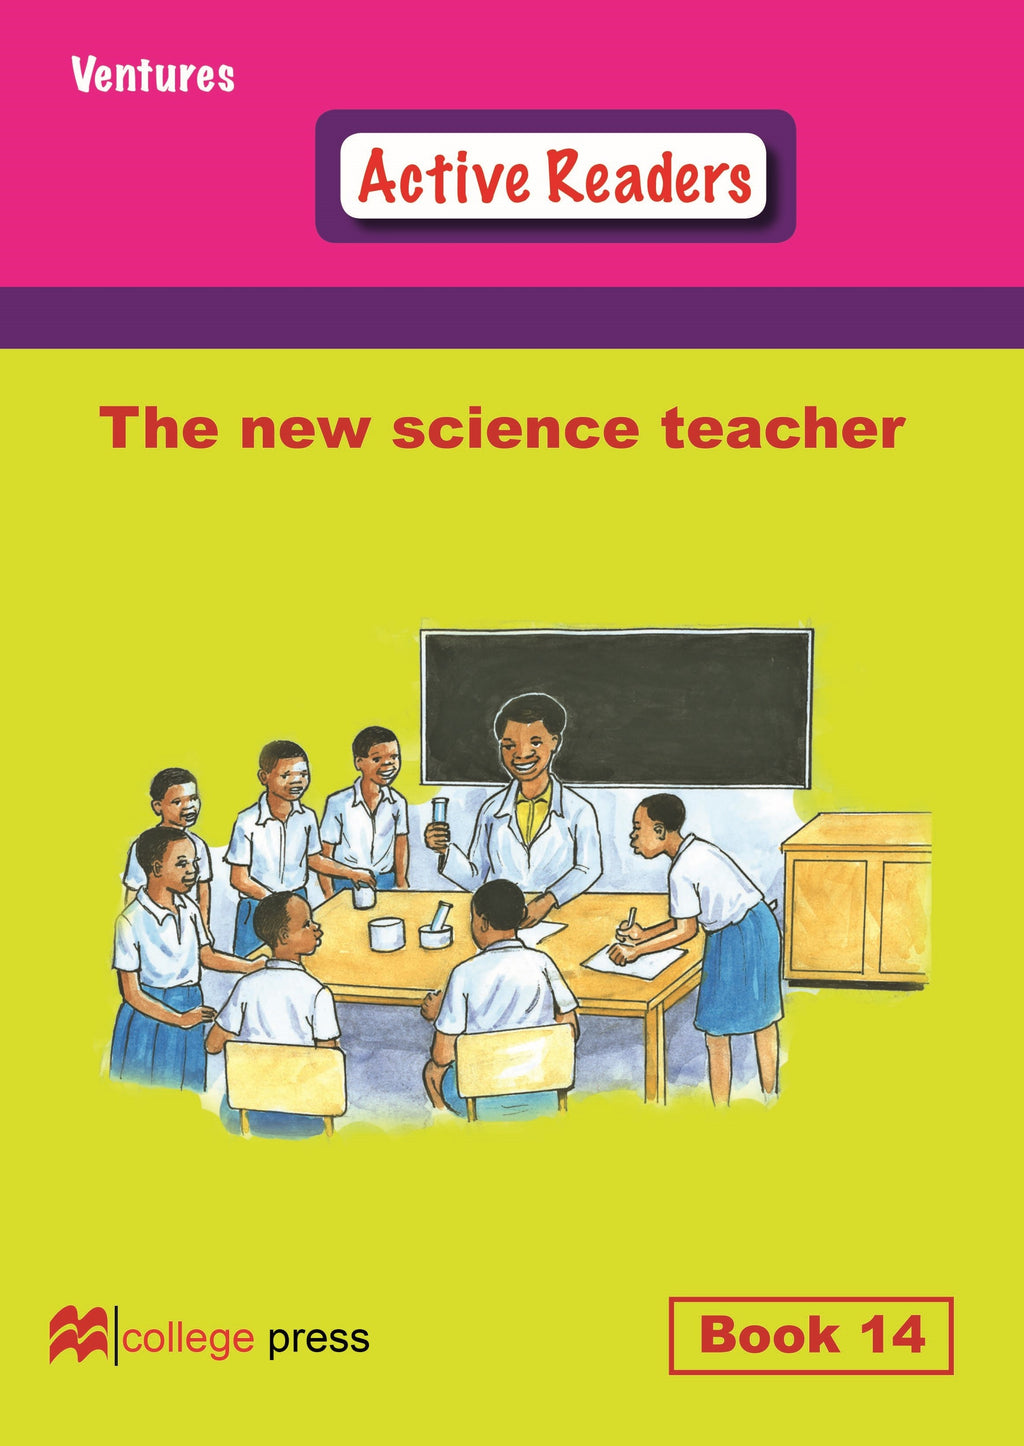 Ventures active readers (Controlled English Reading Scheme) The new science teacher Book14